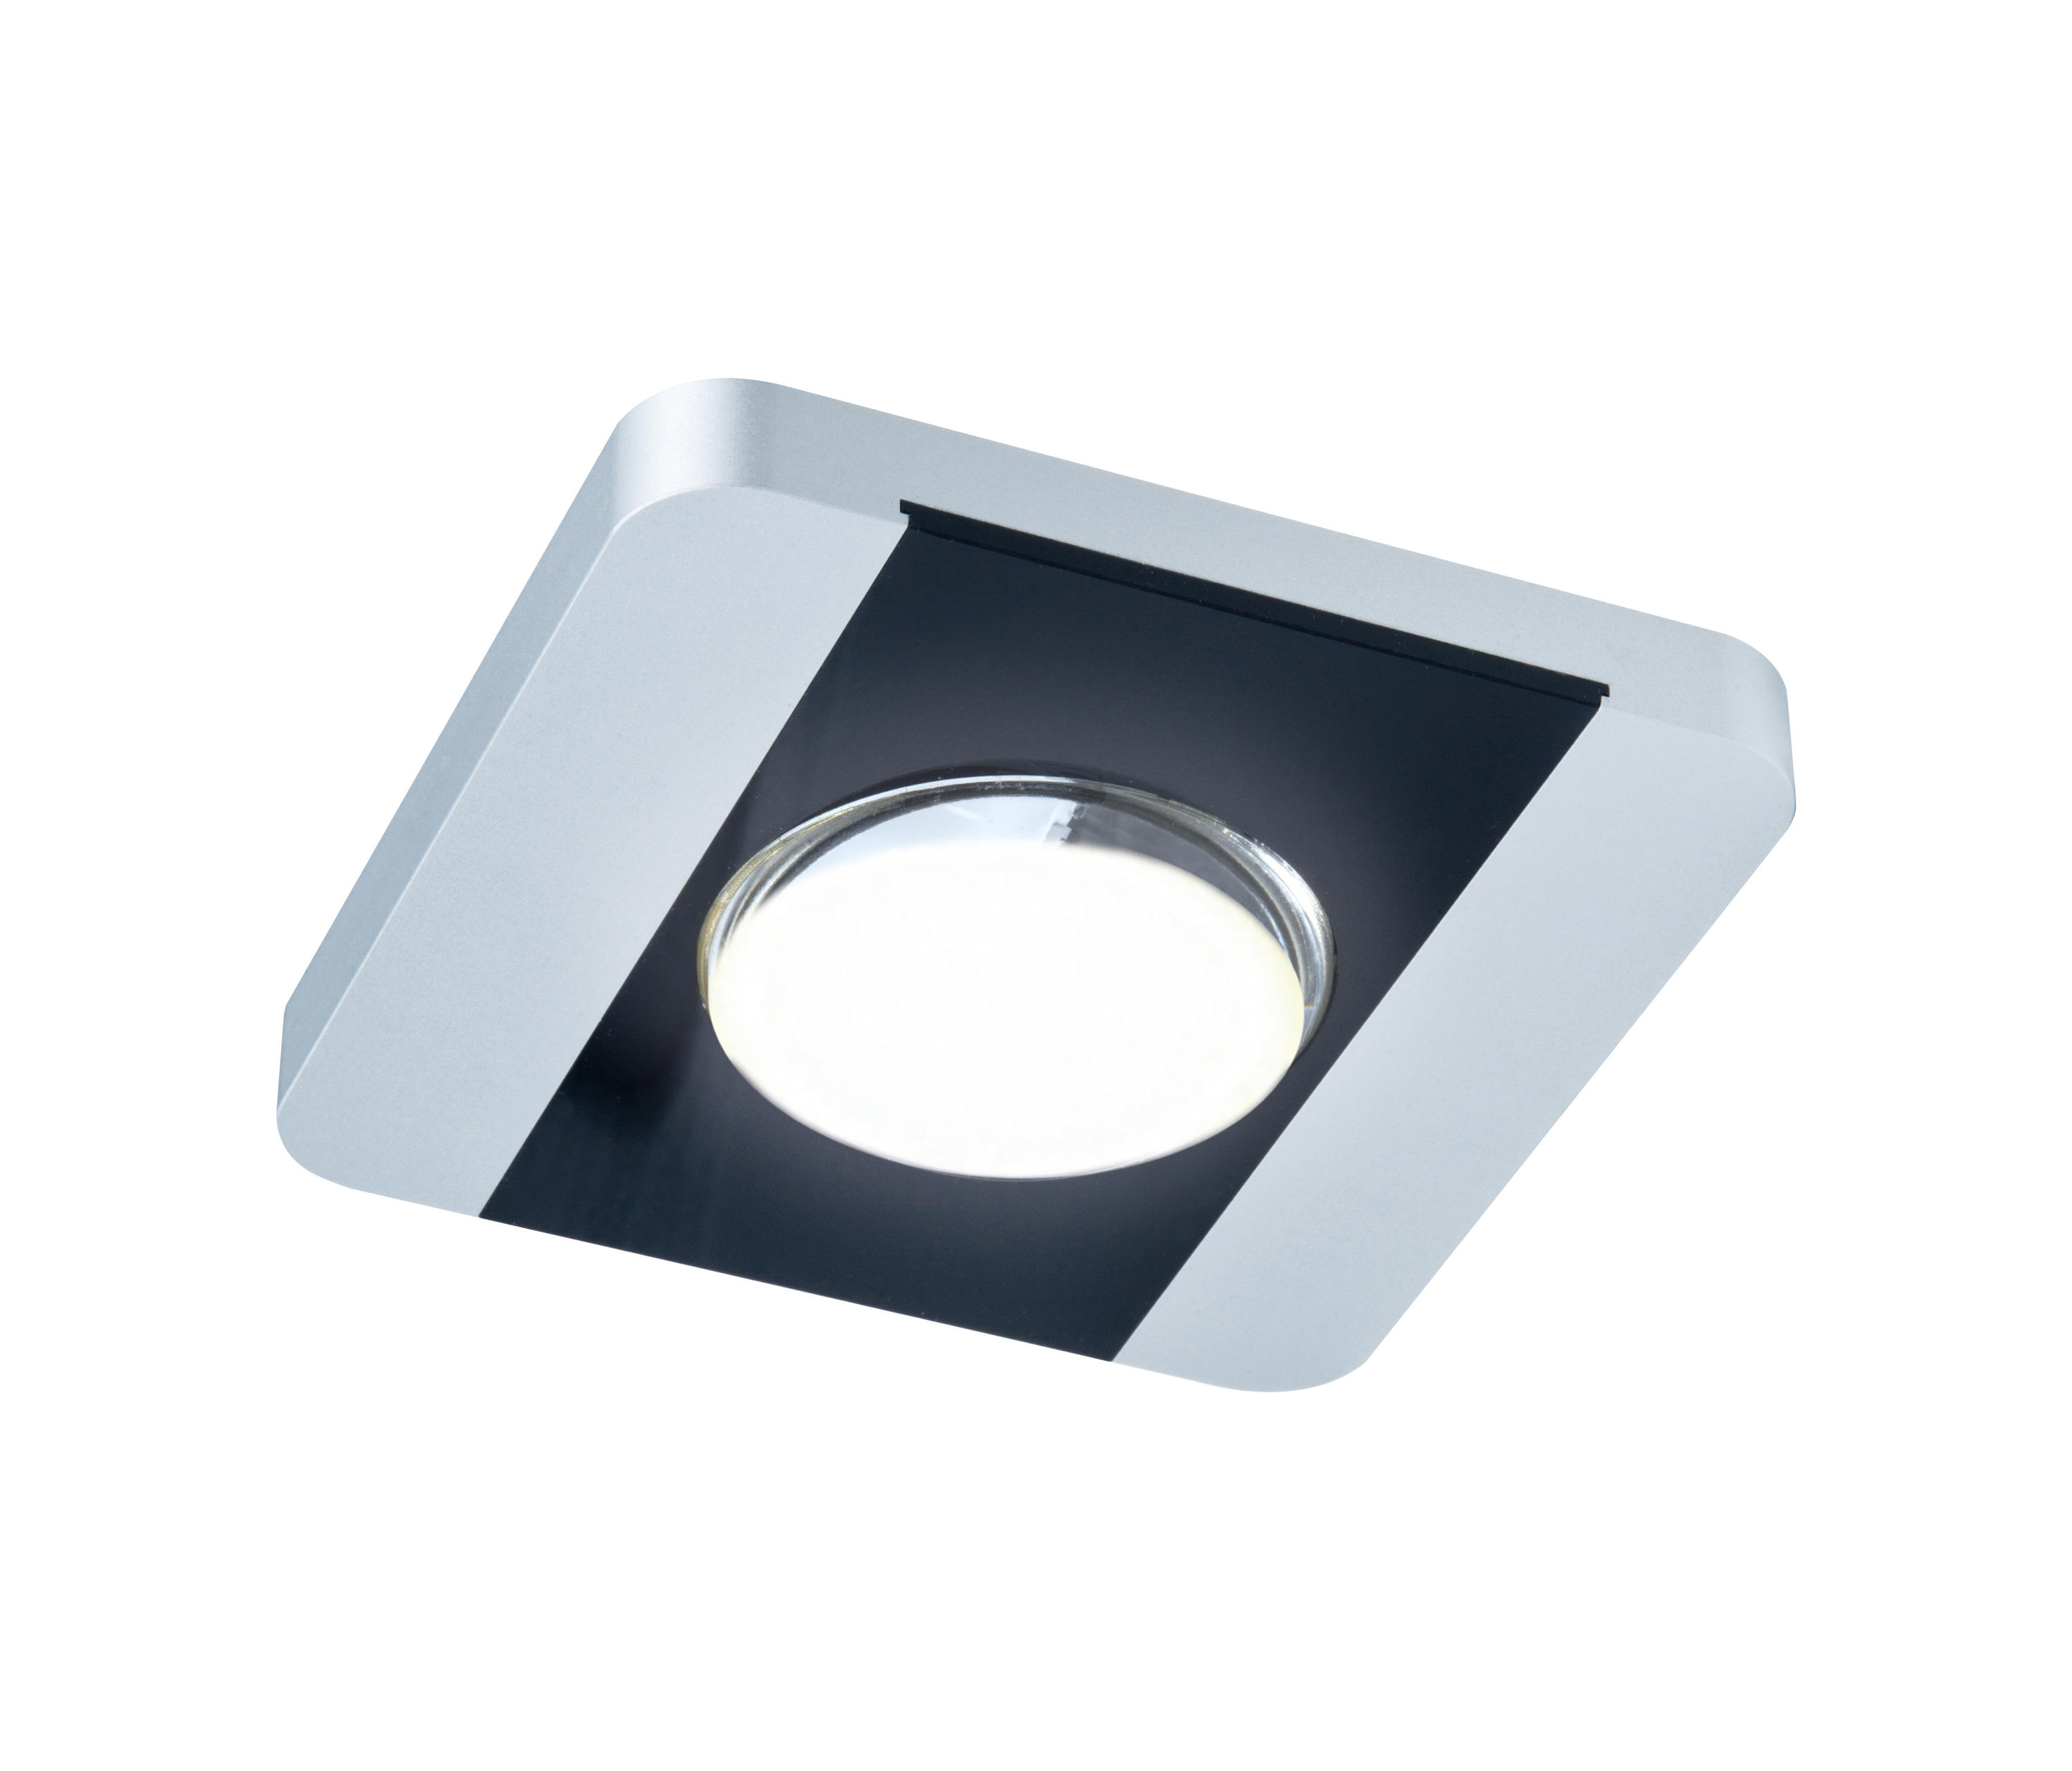 Led base 1 ceiling light by grimmeisen licht